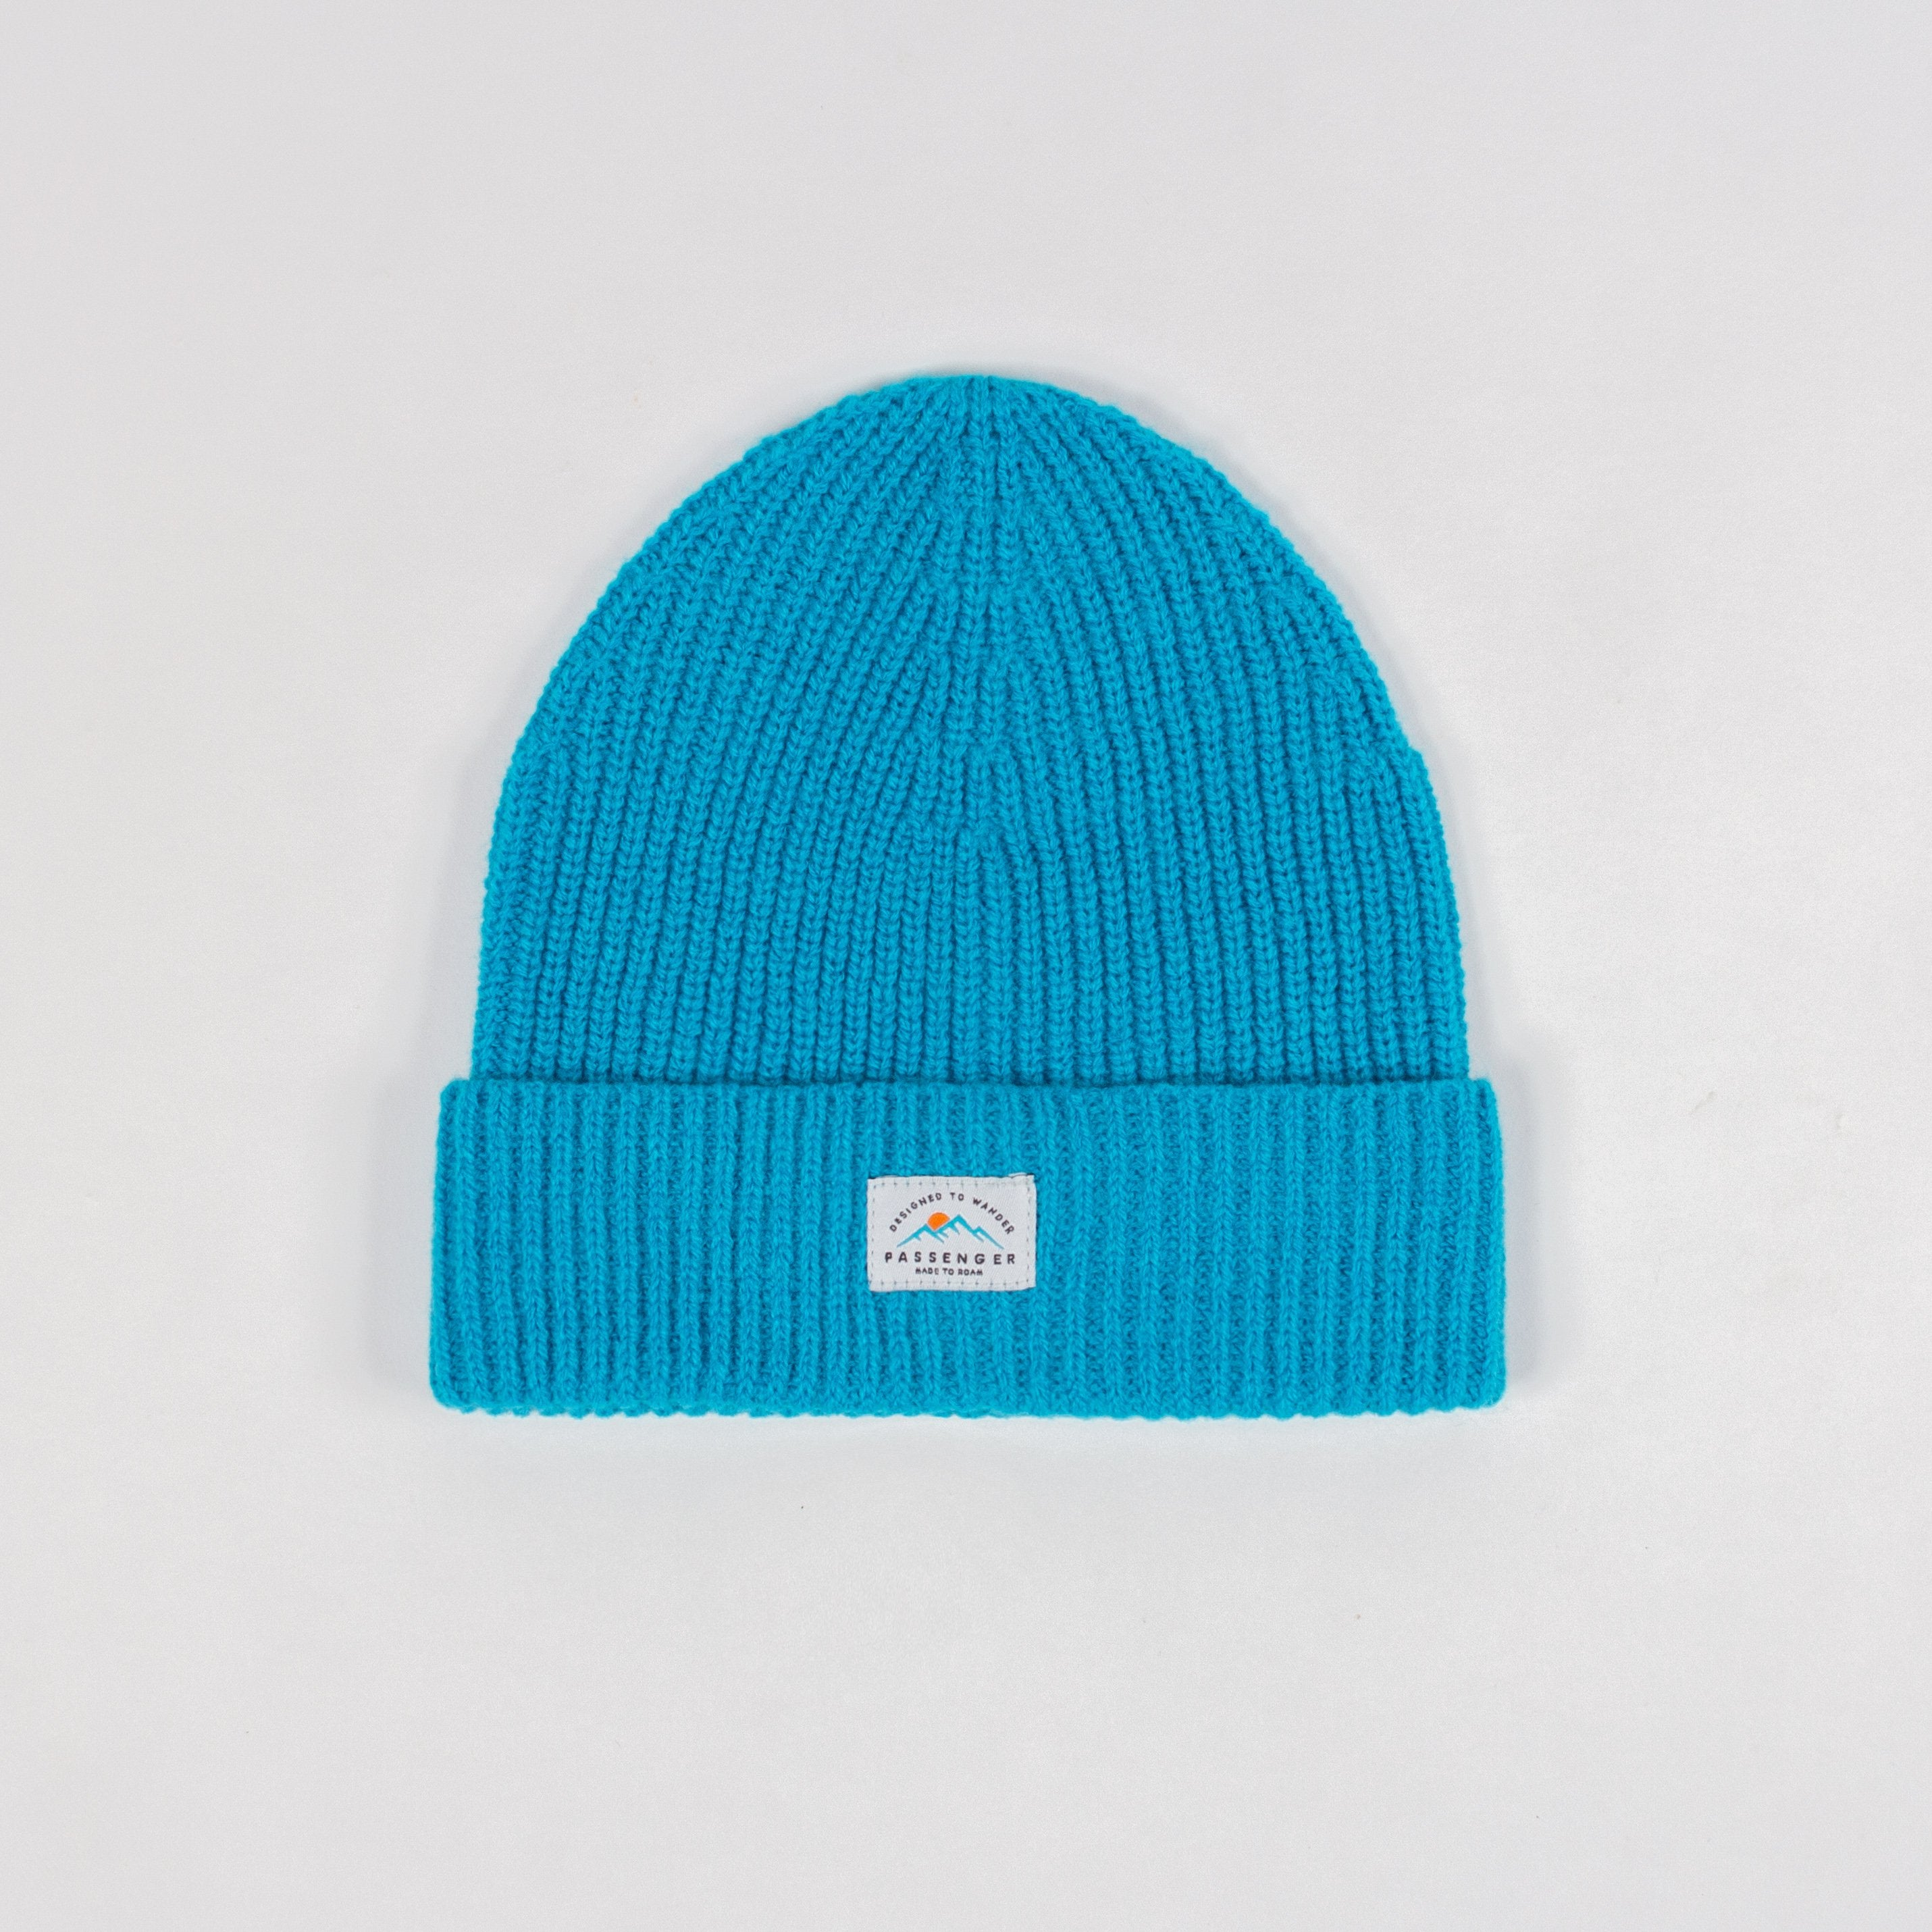 Compasses Beanie - Blue Nights Navy image 2